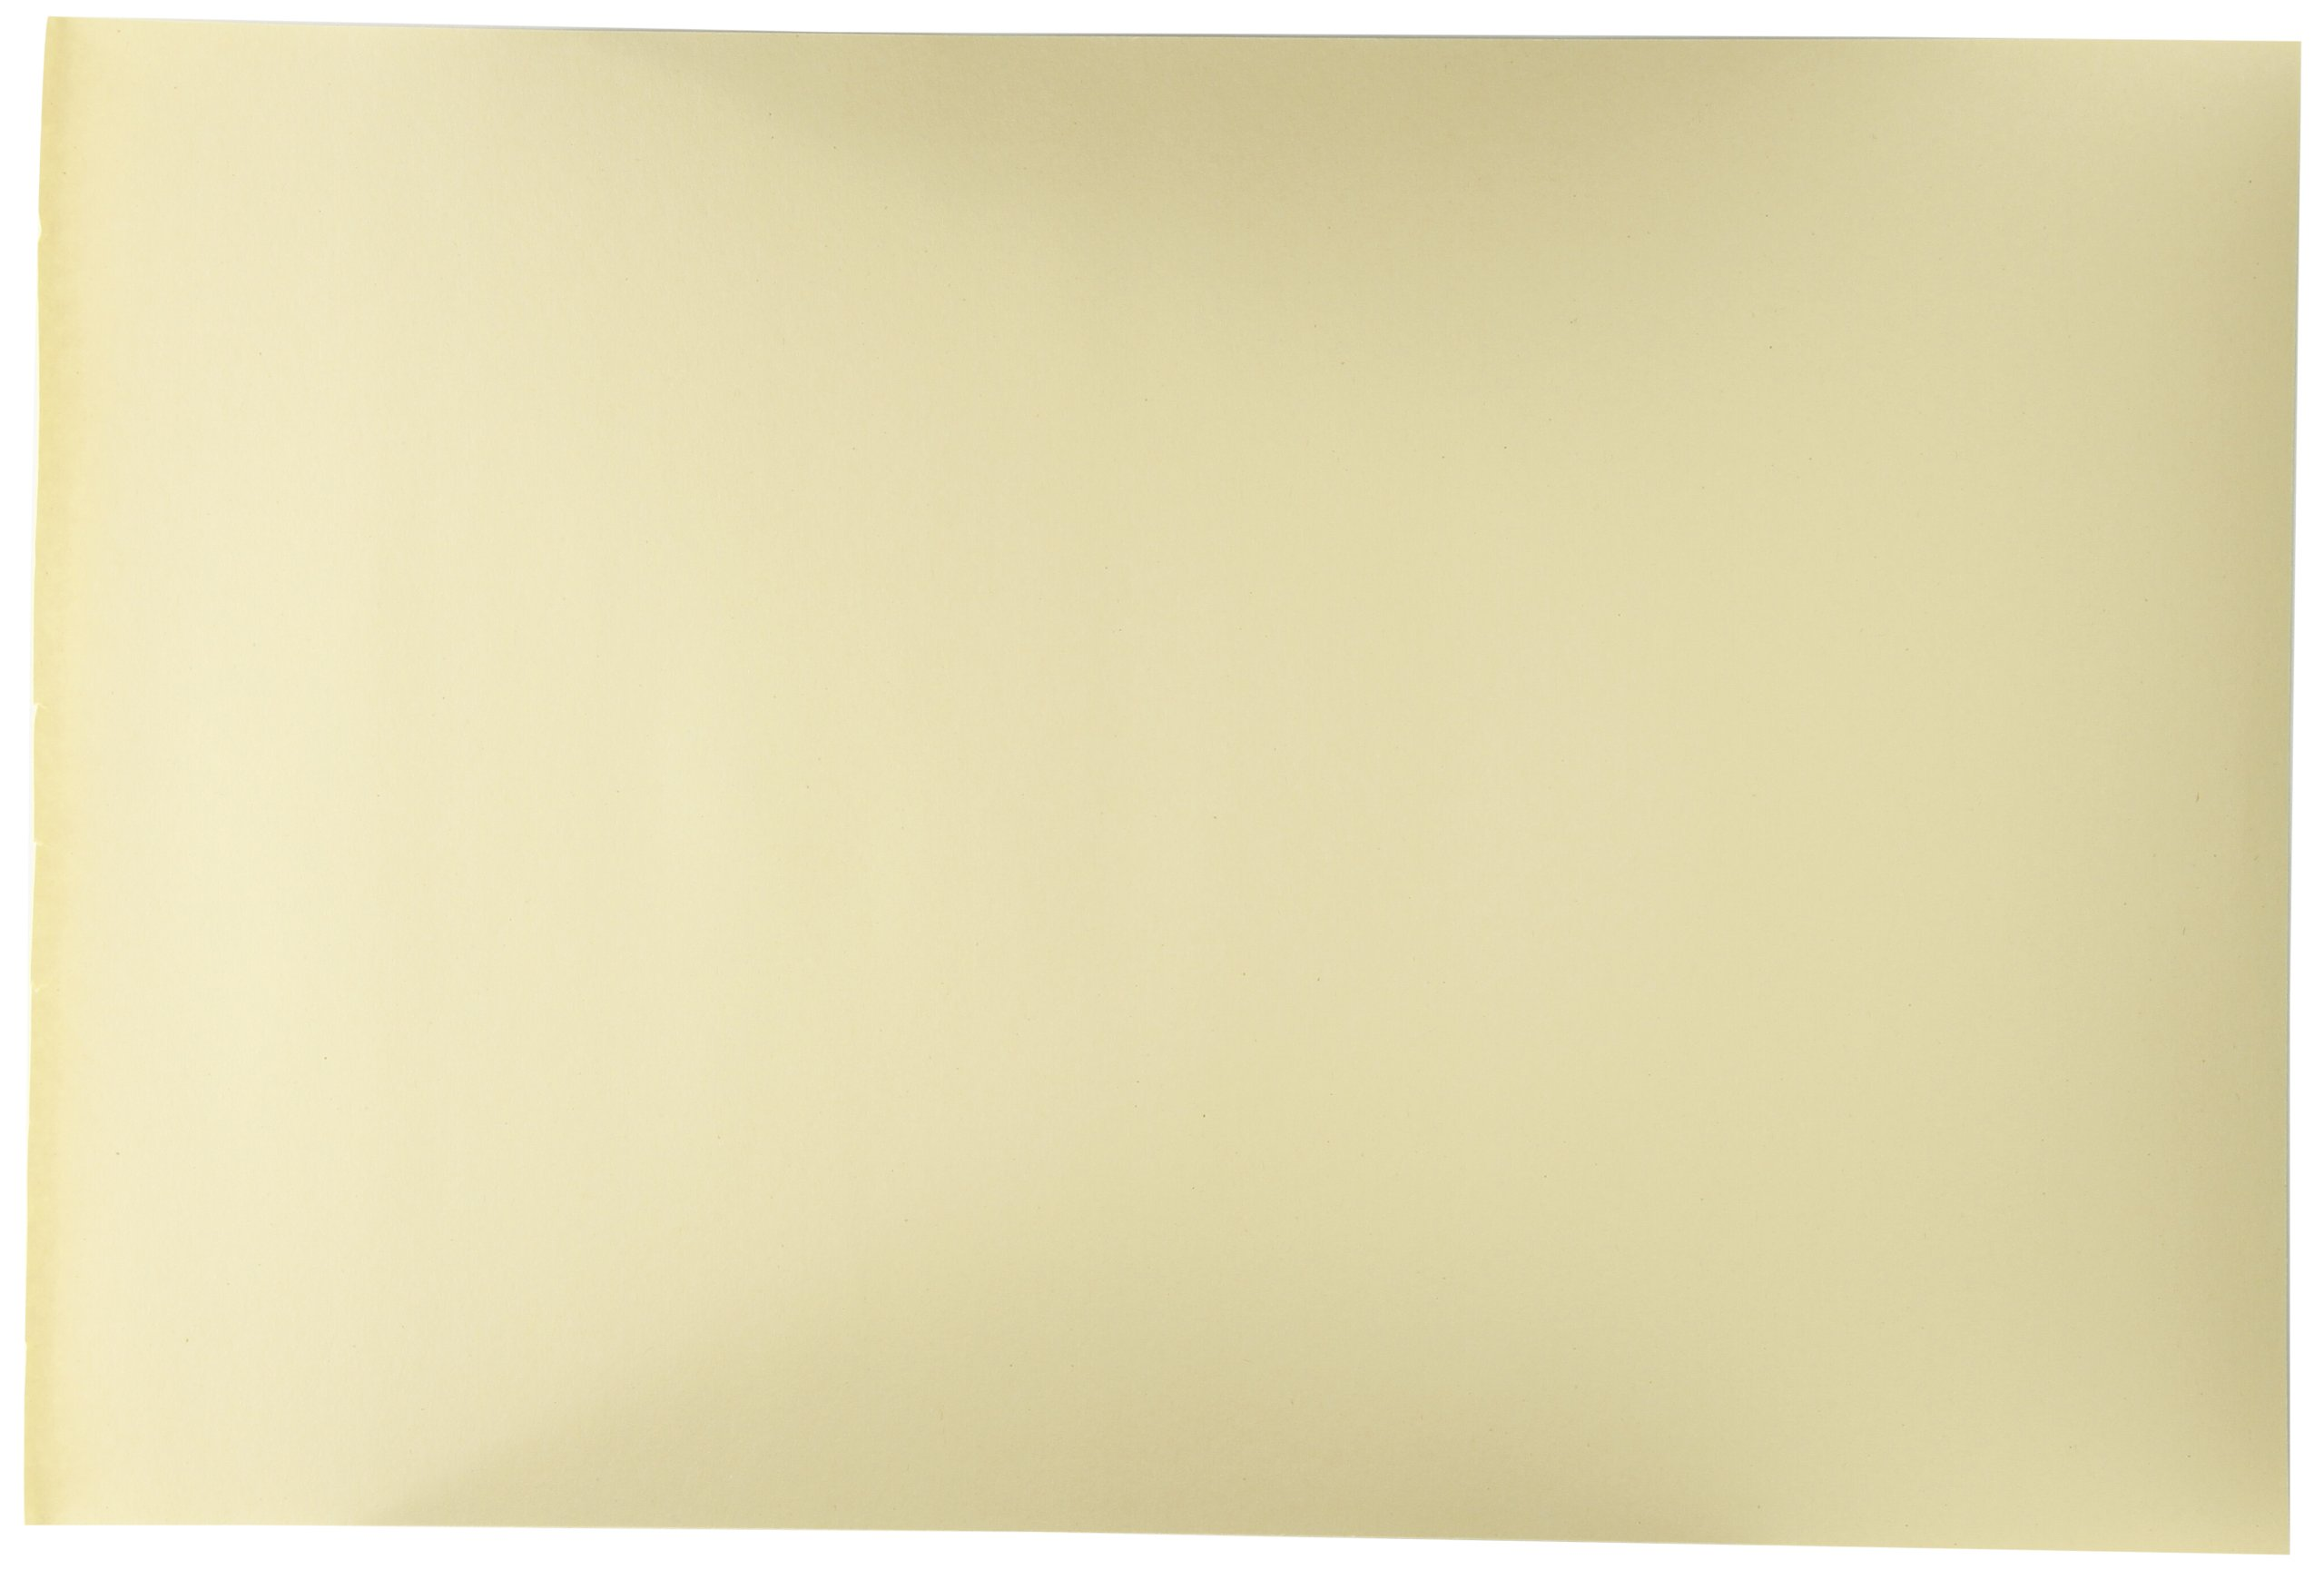 Sax Manila Drawing Paper, 40 Lb., 12 x 18 Inches, Pack of 500 by Sax